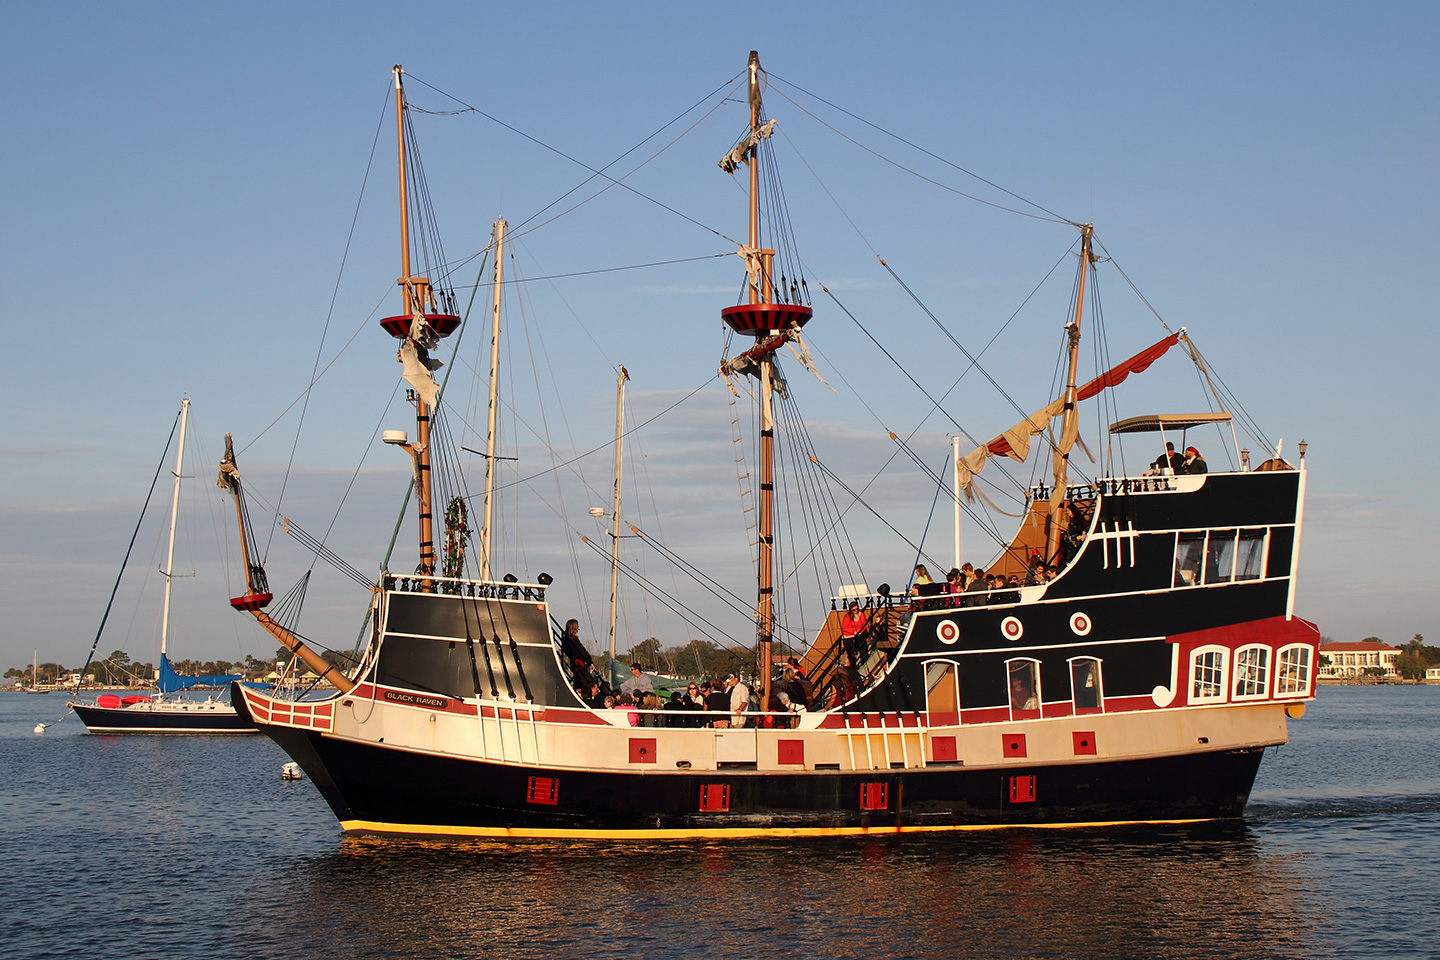 List of Fun Things To Do In St. Augustine, Florida - Pirate Ship Black Raven